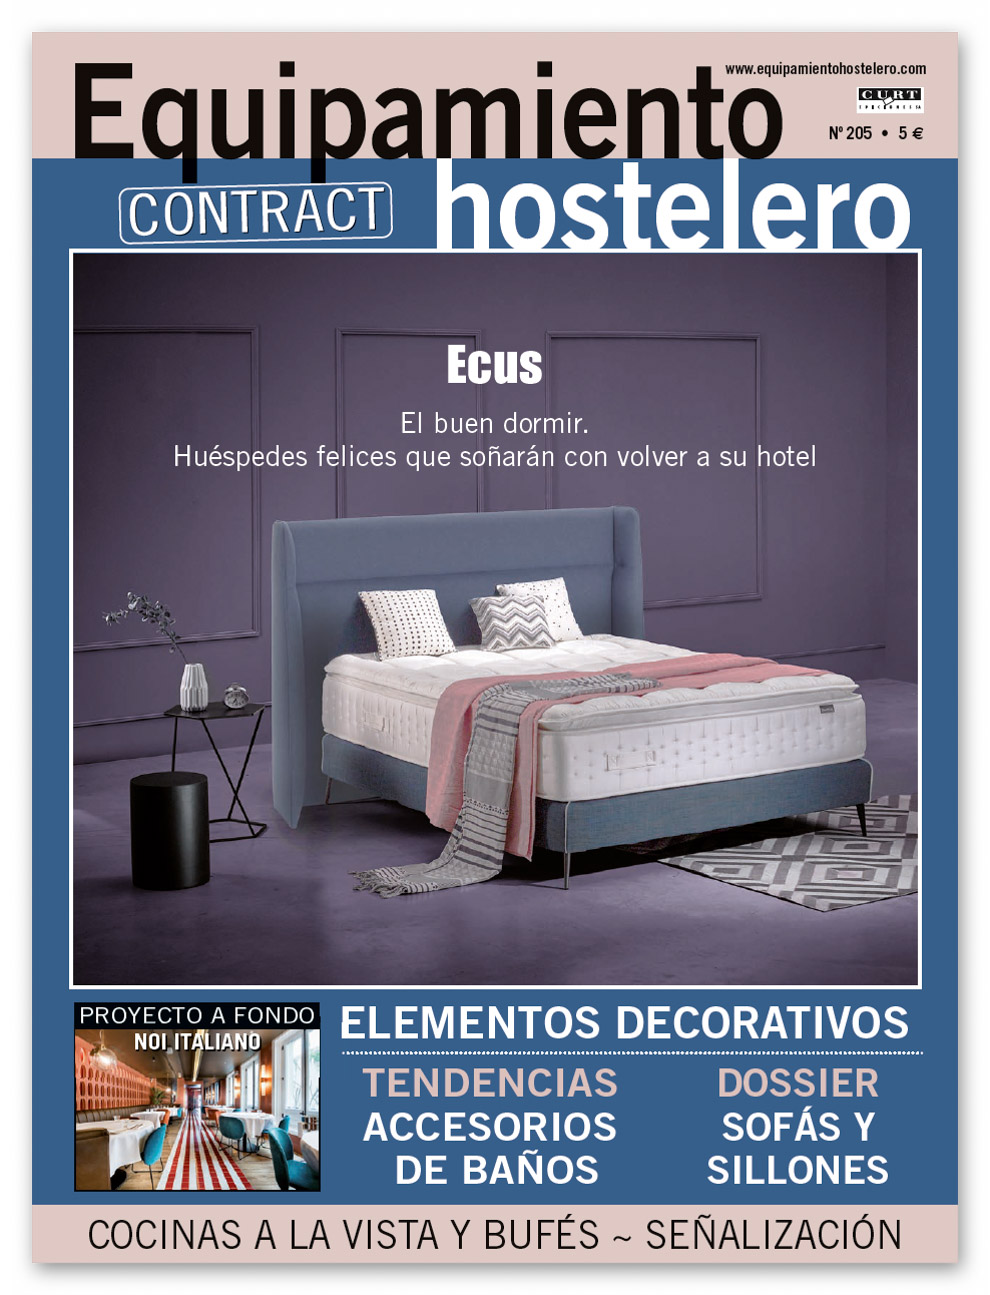 Equipamiento Hostelero - Arquima developments